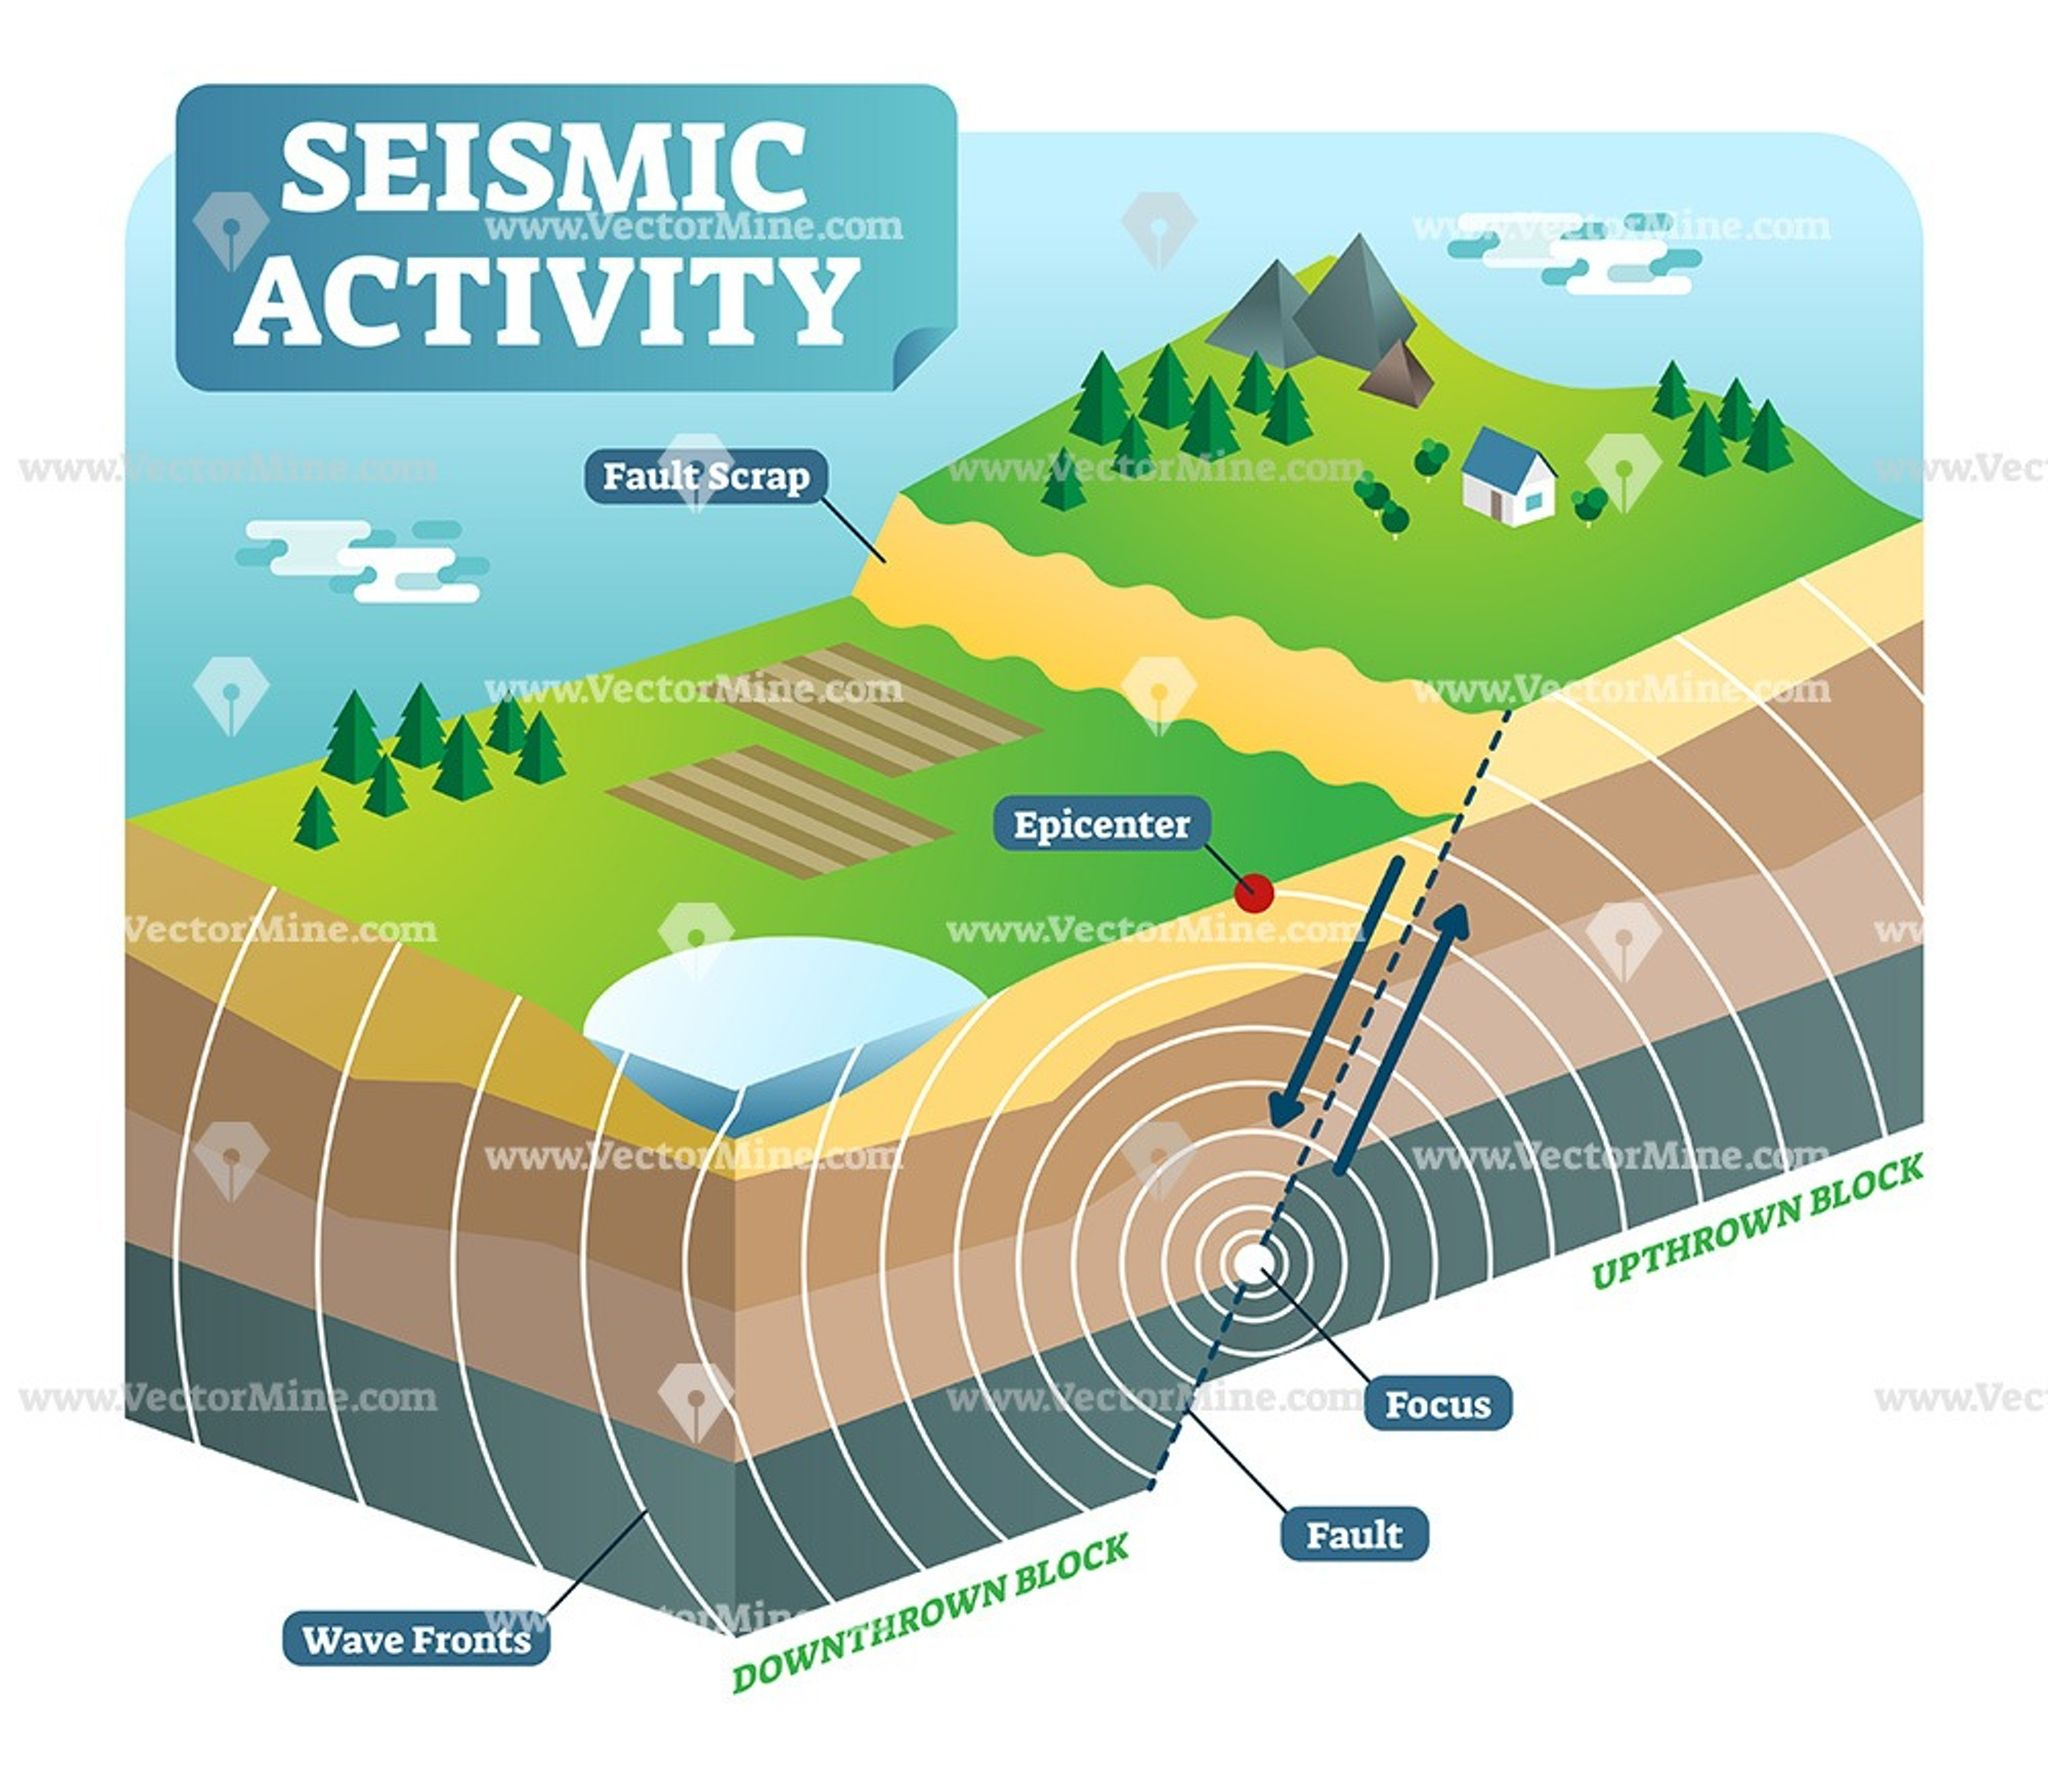 Seismic Activity Isometric Vector Illustration Diagram